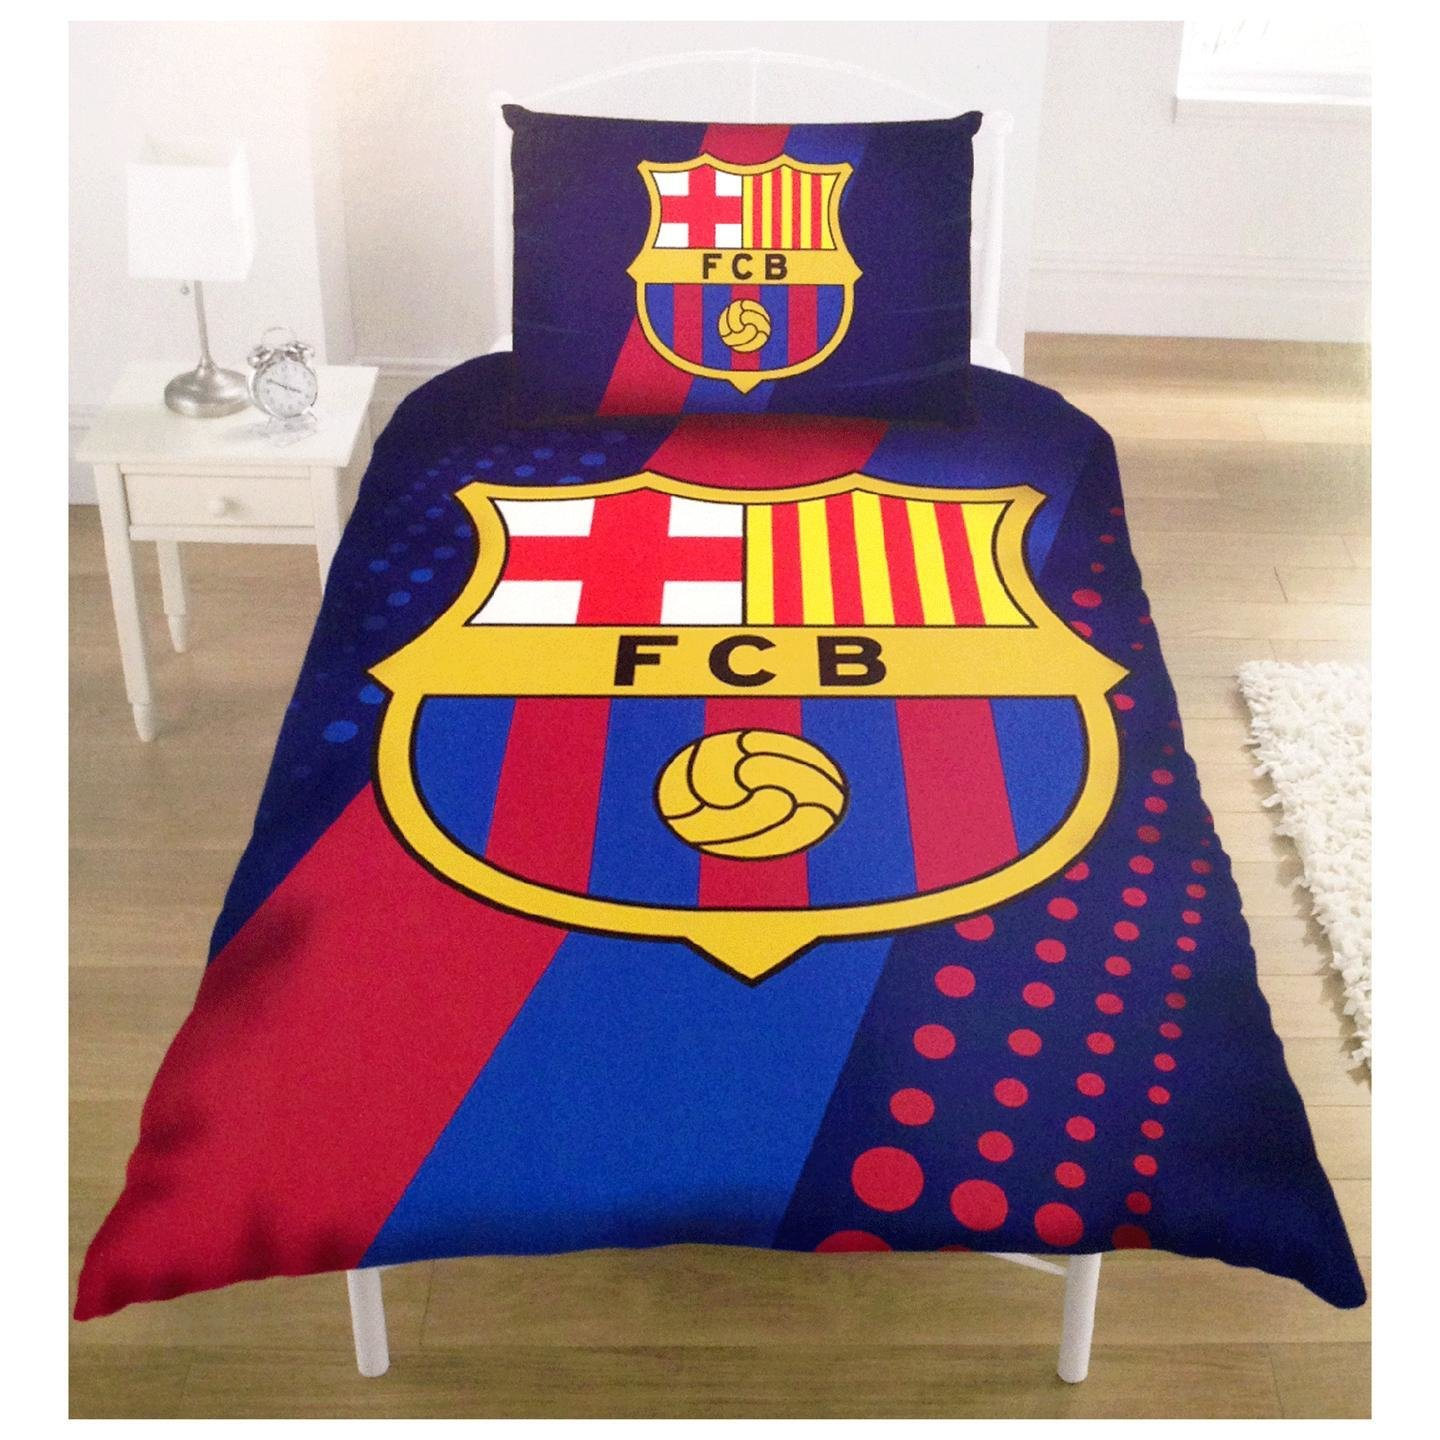 Best Football Club Single Duvet Cover Bedding Sets Arsenal With Pictures